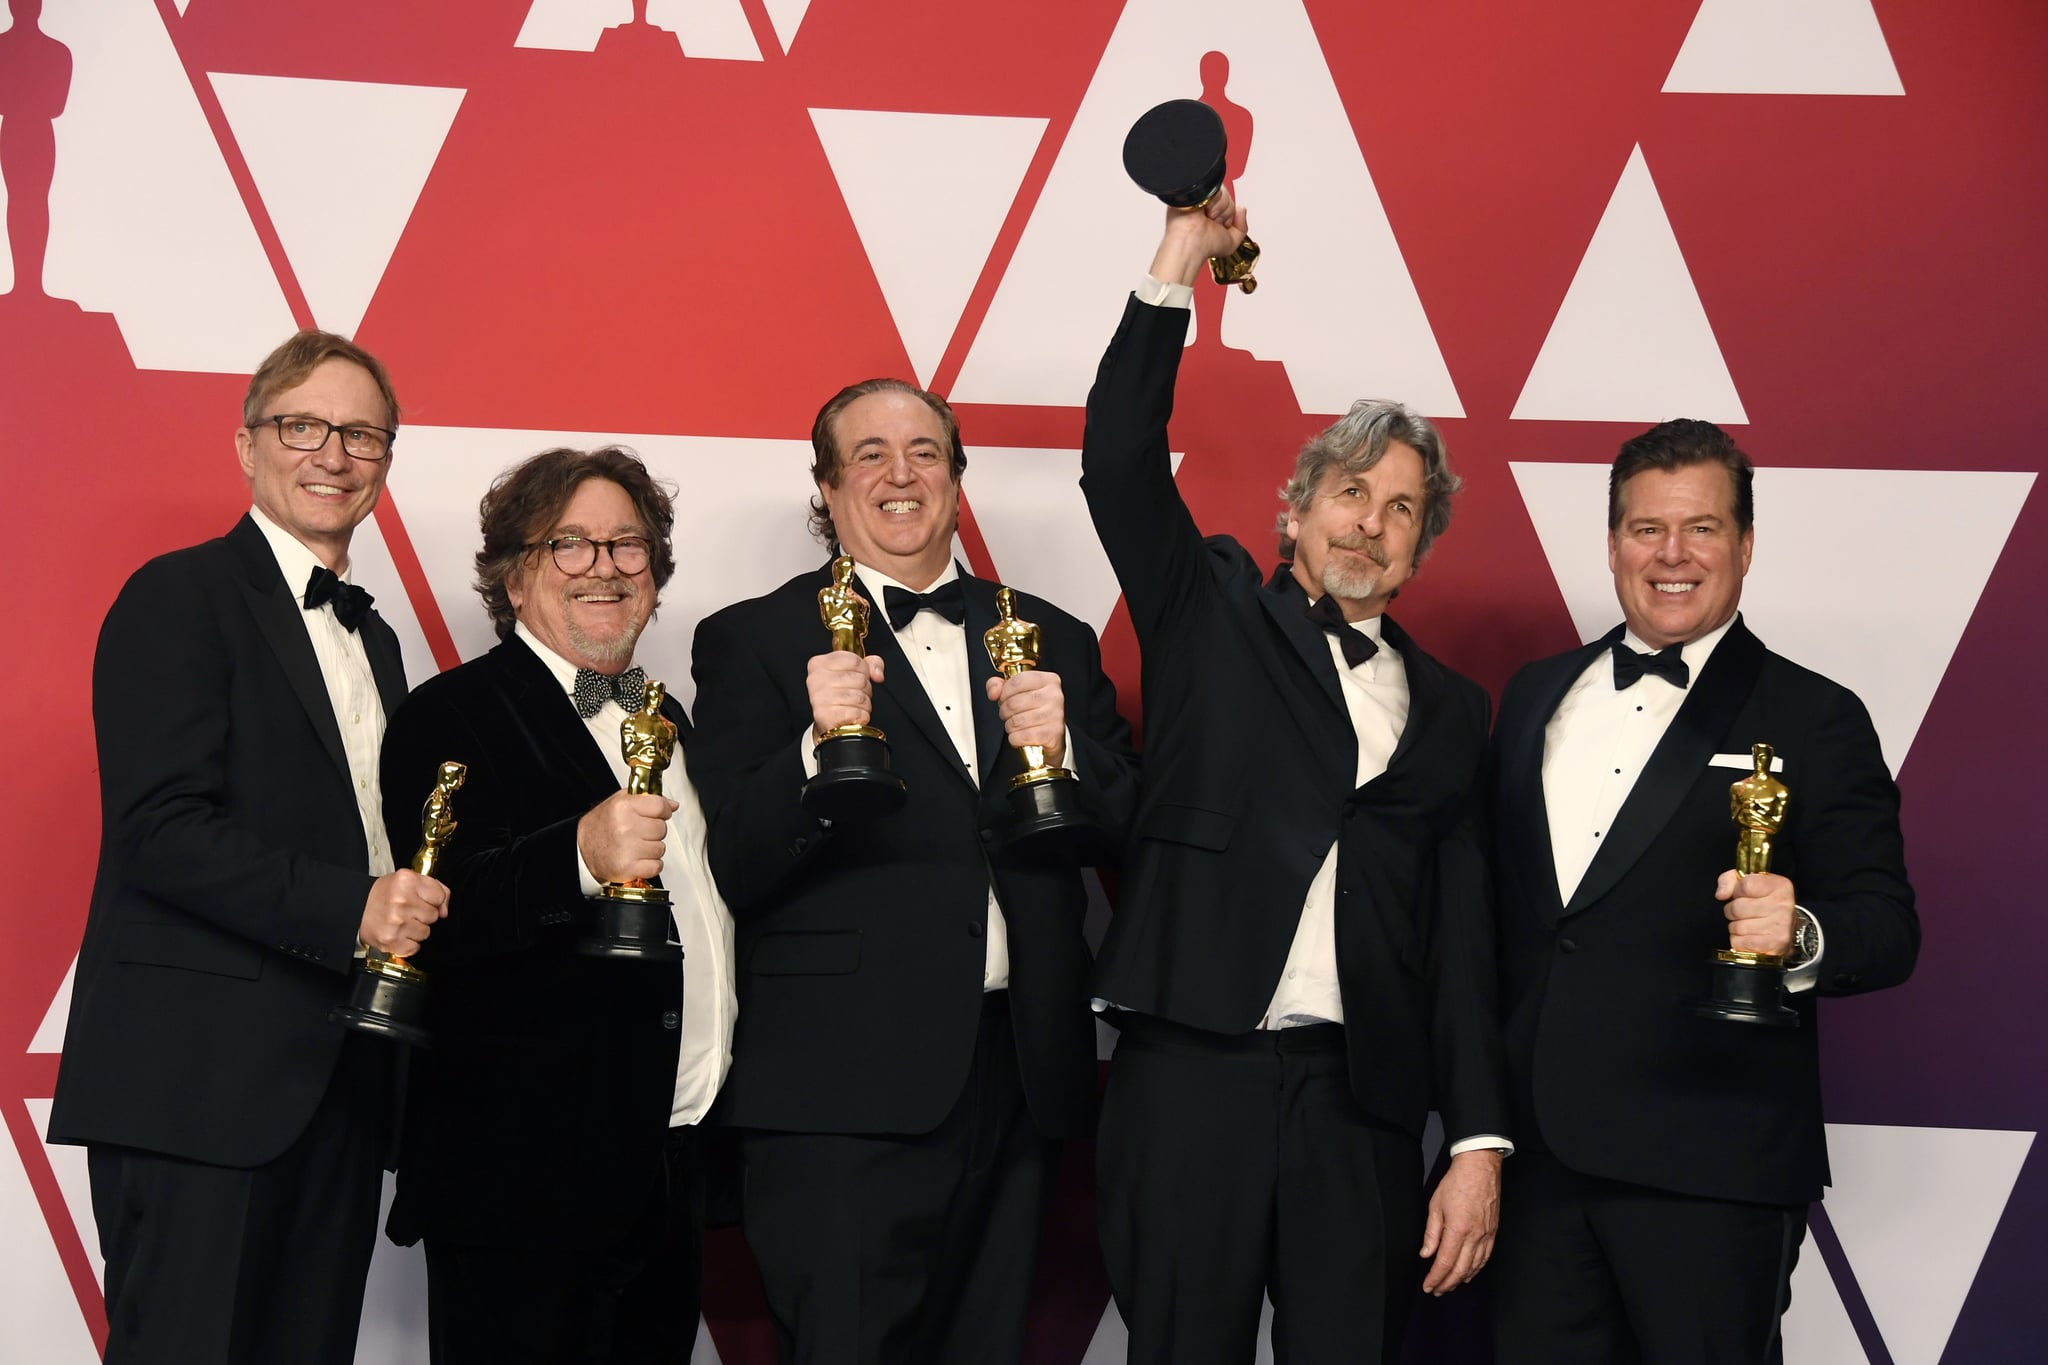 HOLLYWOOD, CALIFORNIA - FEBRUARY 24: (L-R) Jim Burke, Charles B. Wessler, Nick Vallelonga, Peter Farrelly, and Brian Currie, winners of Best Picture for